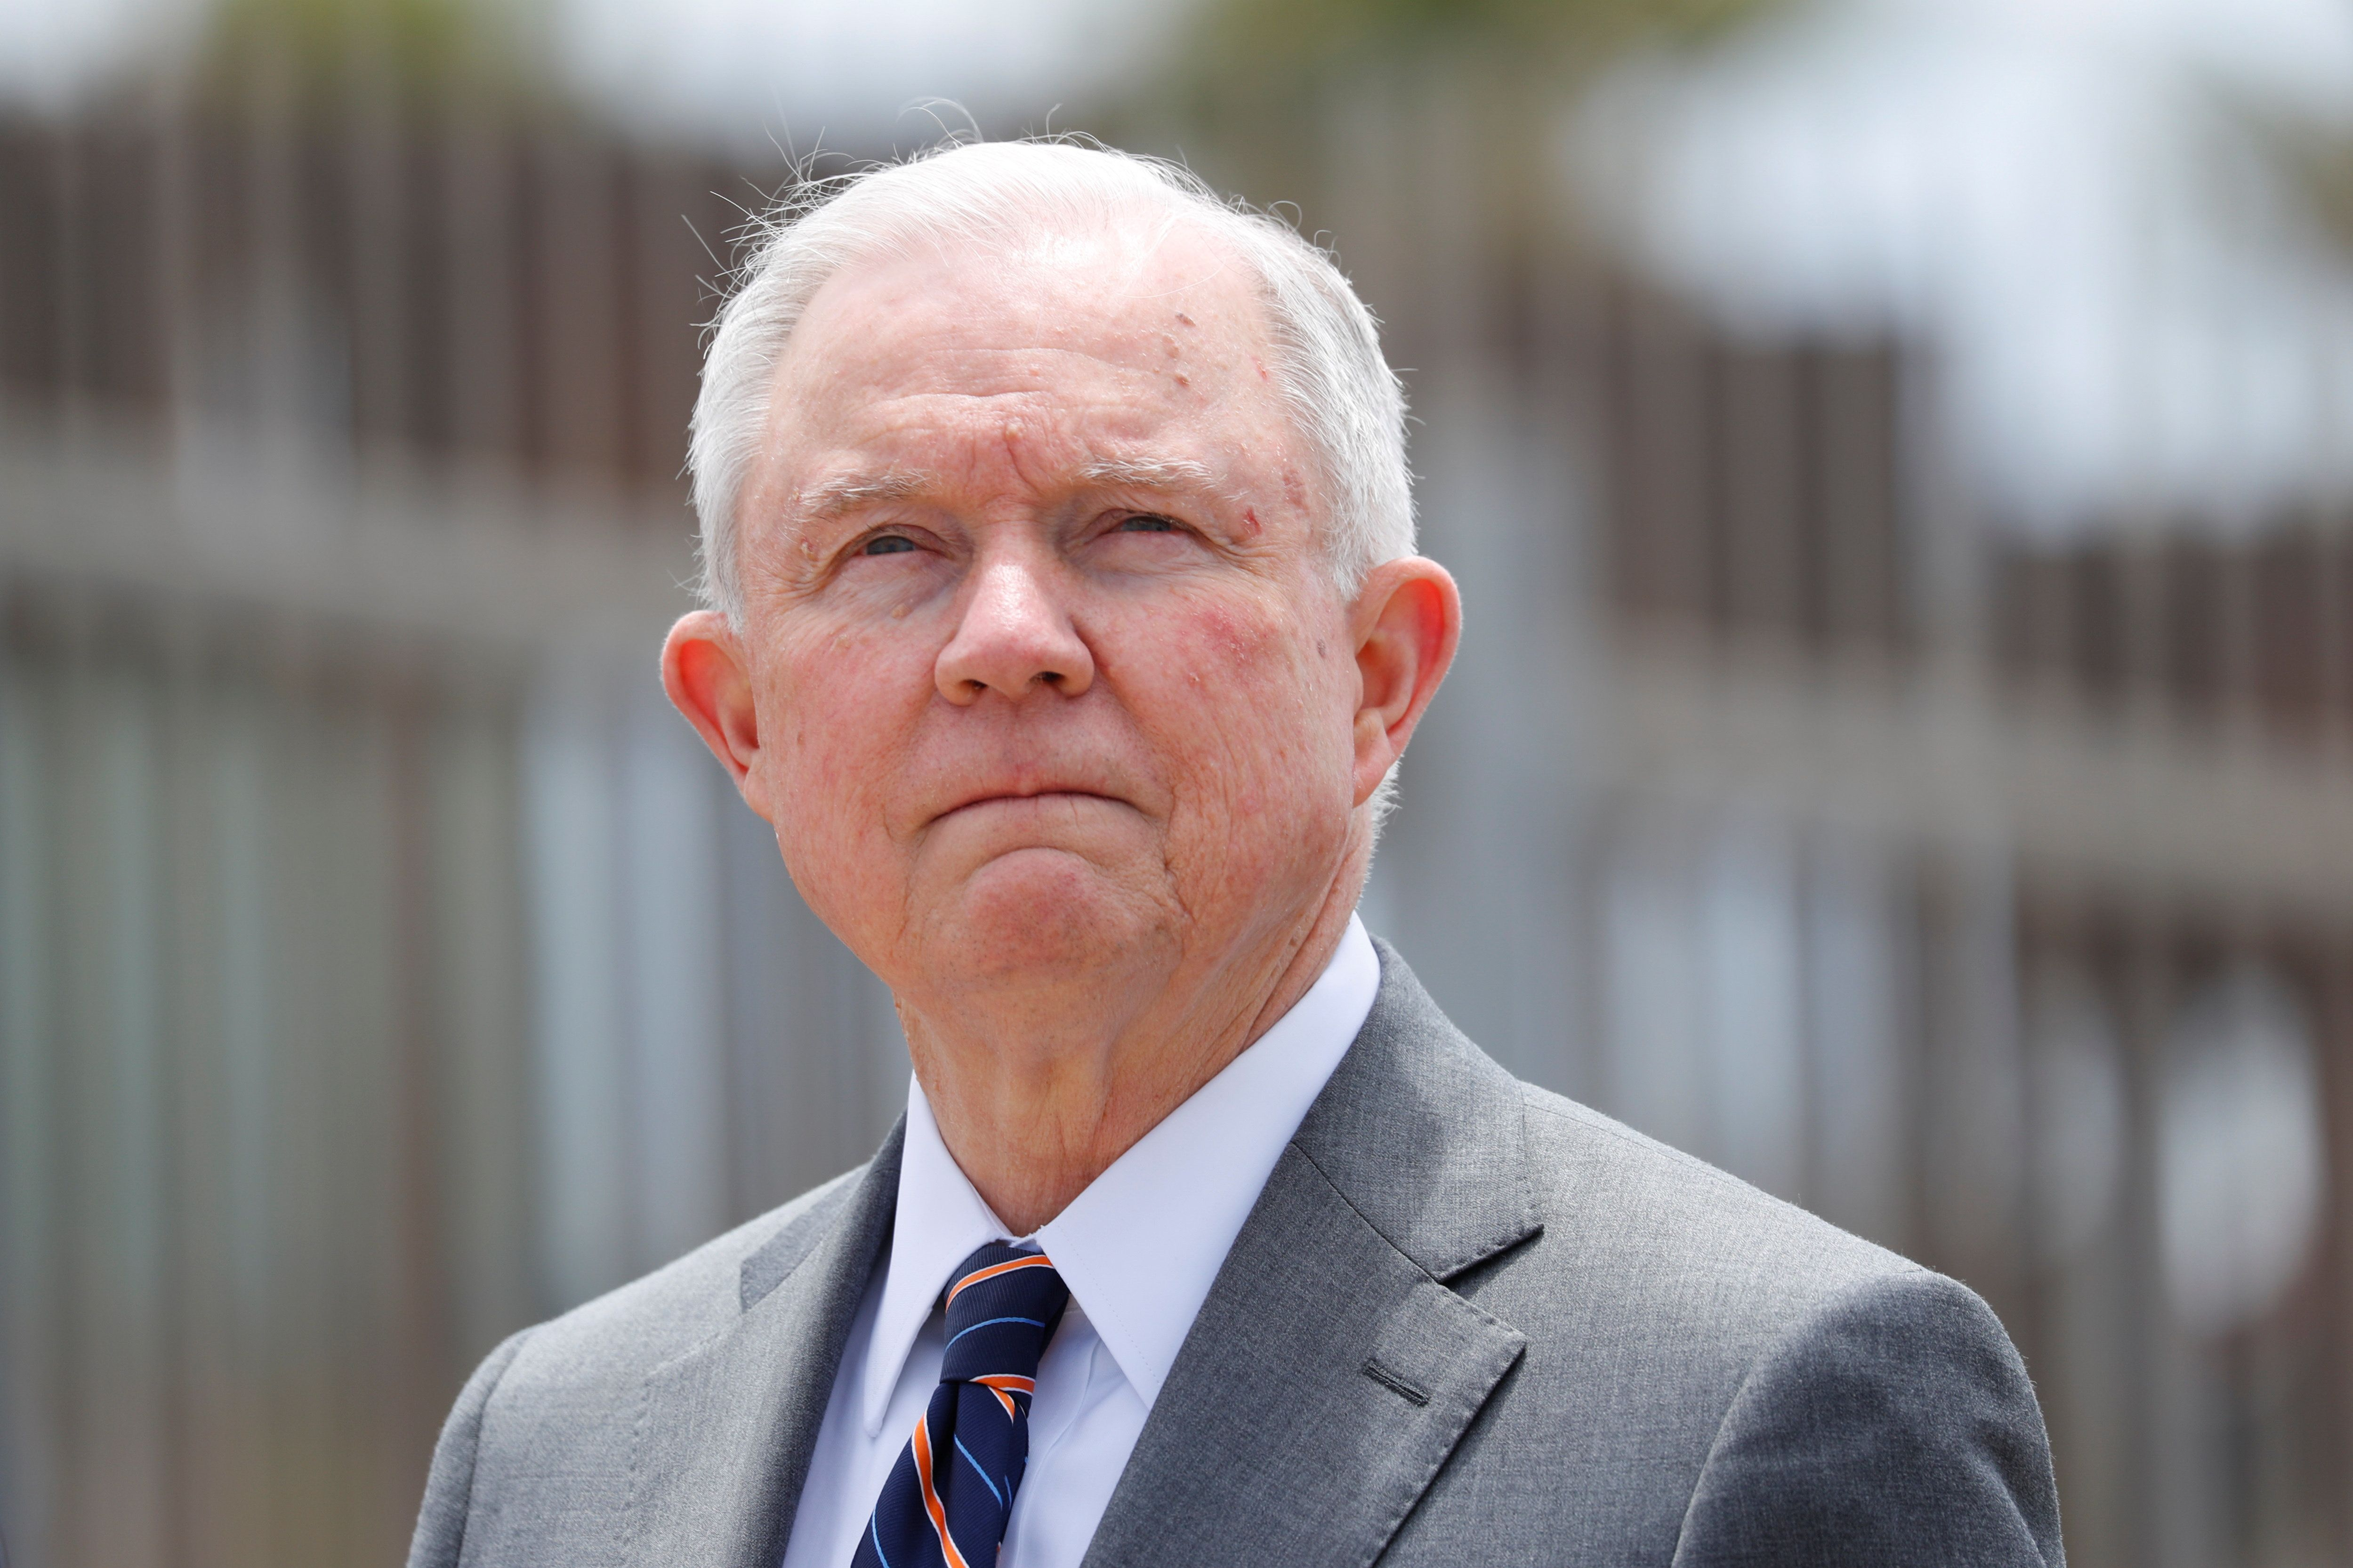 U.S. Attorney General Jeff Sessions looks on during a news conference next to the U.S. Mexico border wall to discuss immigration enforcement actions of the Trump Administration near San Diego, California, U.S. May 7, 2018.   REUTERS/Mike Blake